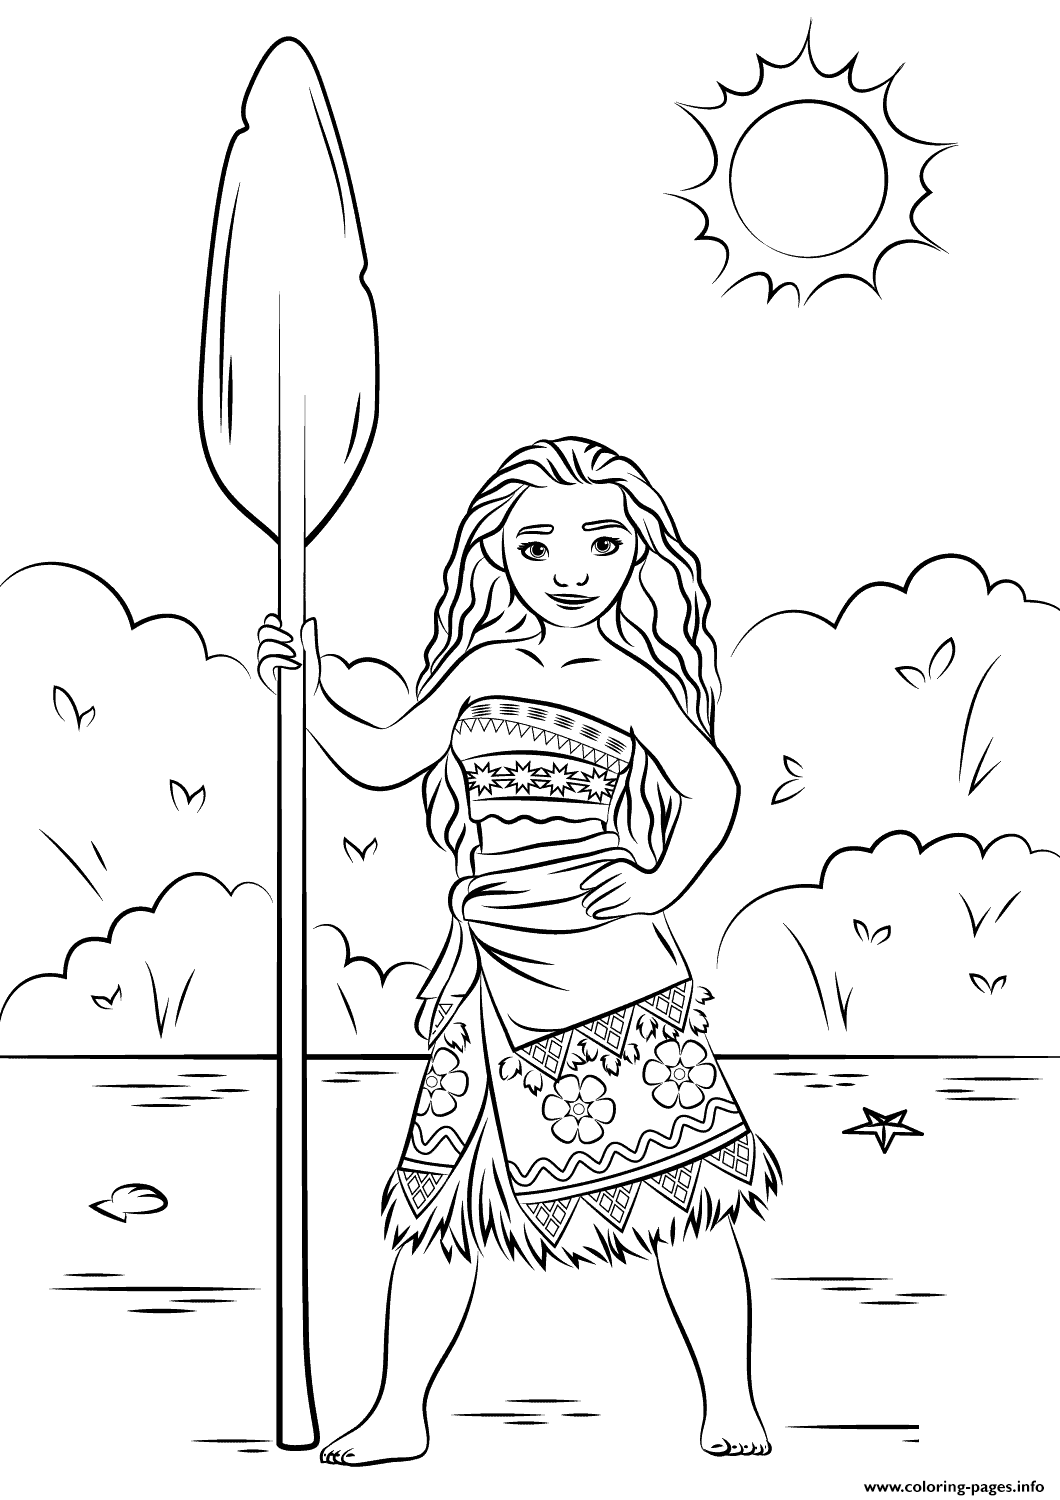 print princess moana disney coloring pages pretty papers paper